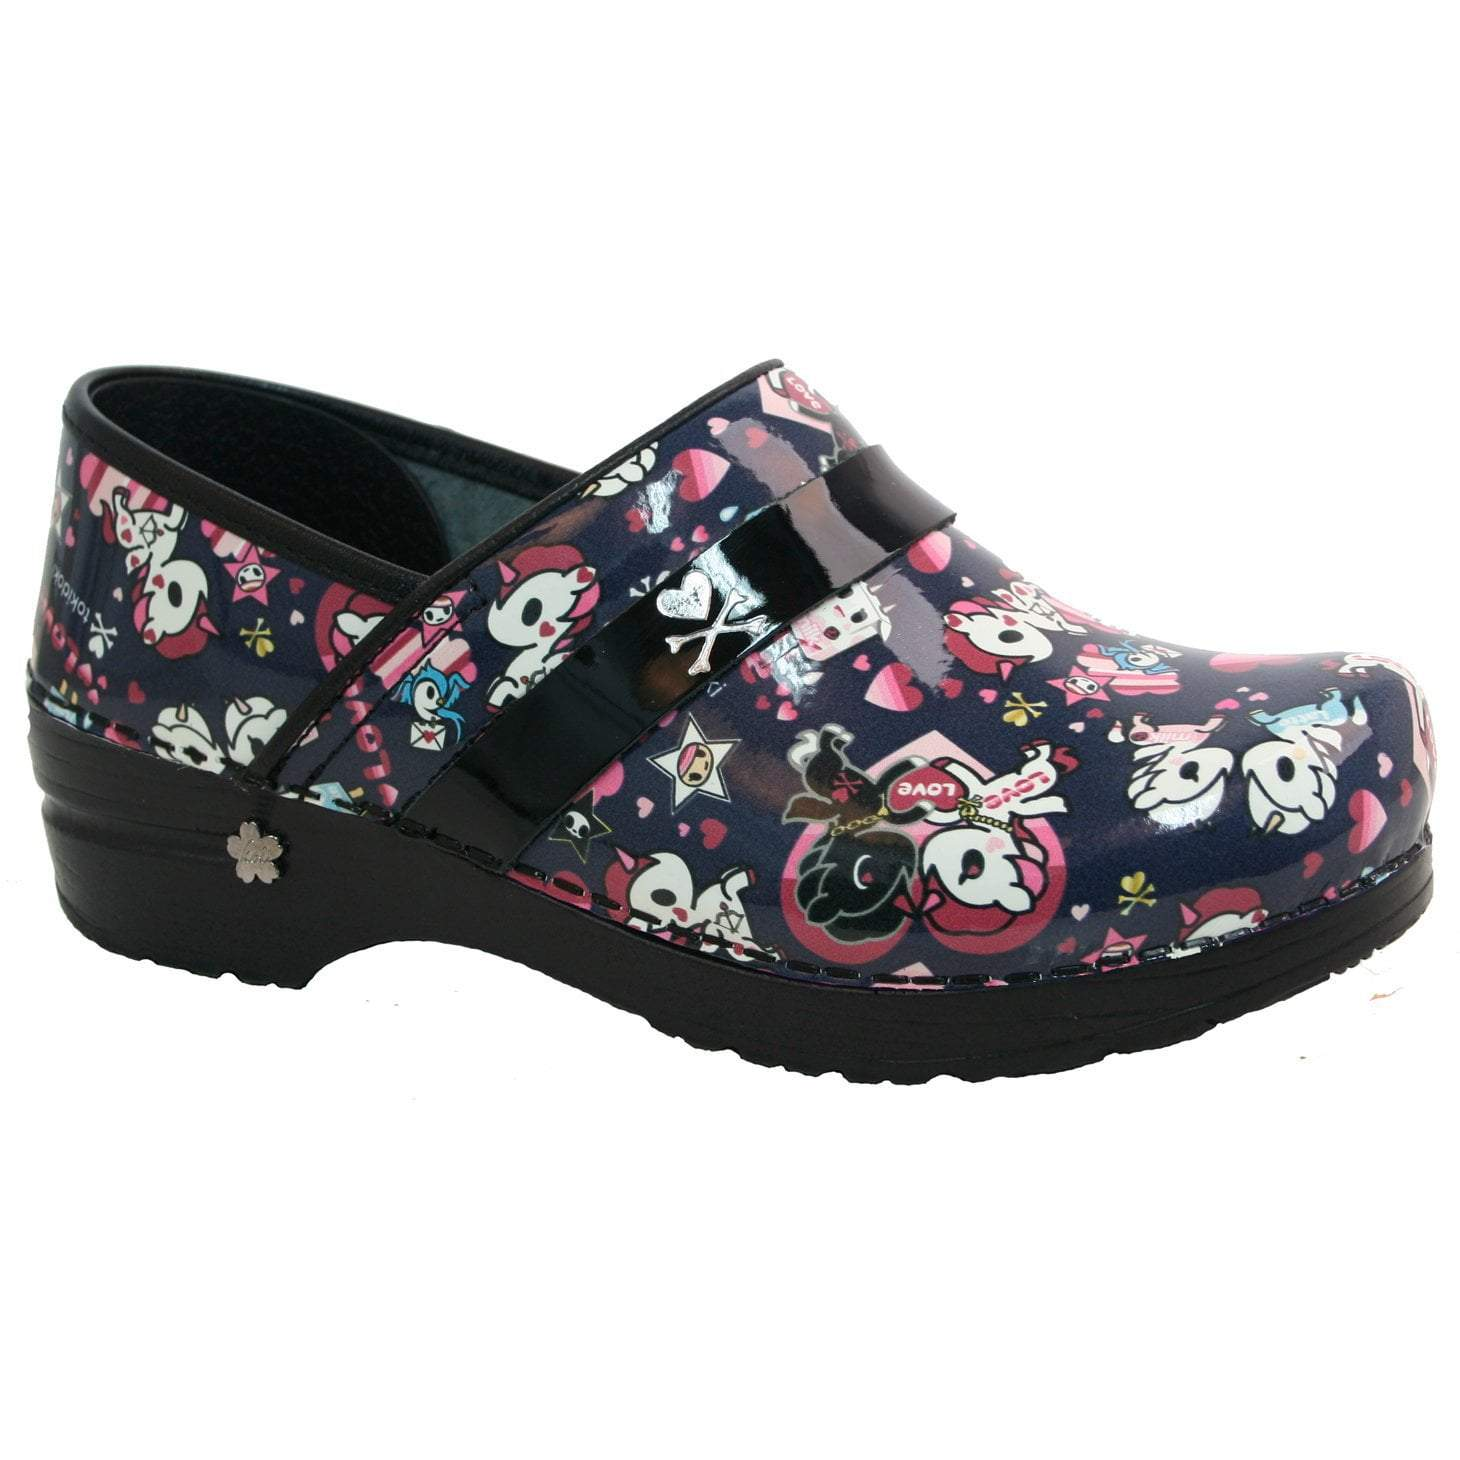 Sanita Paramour Women's Closed Back Clog